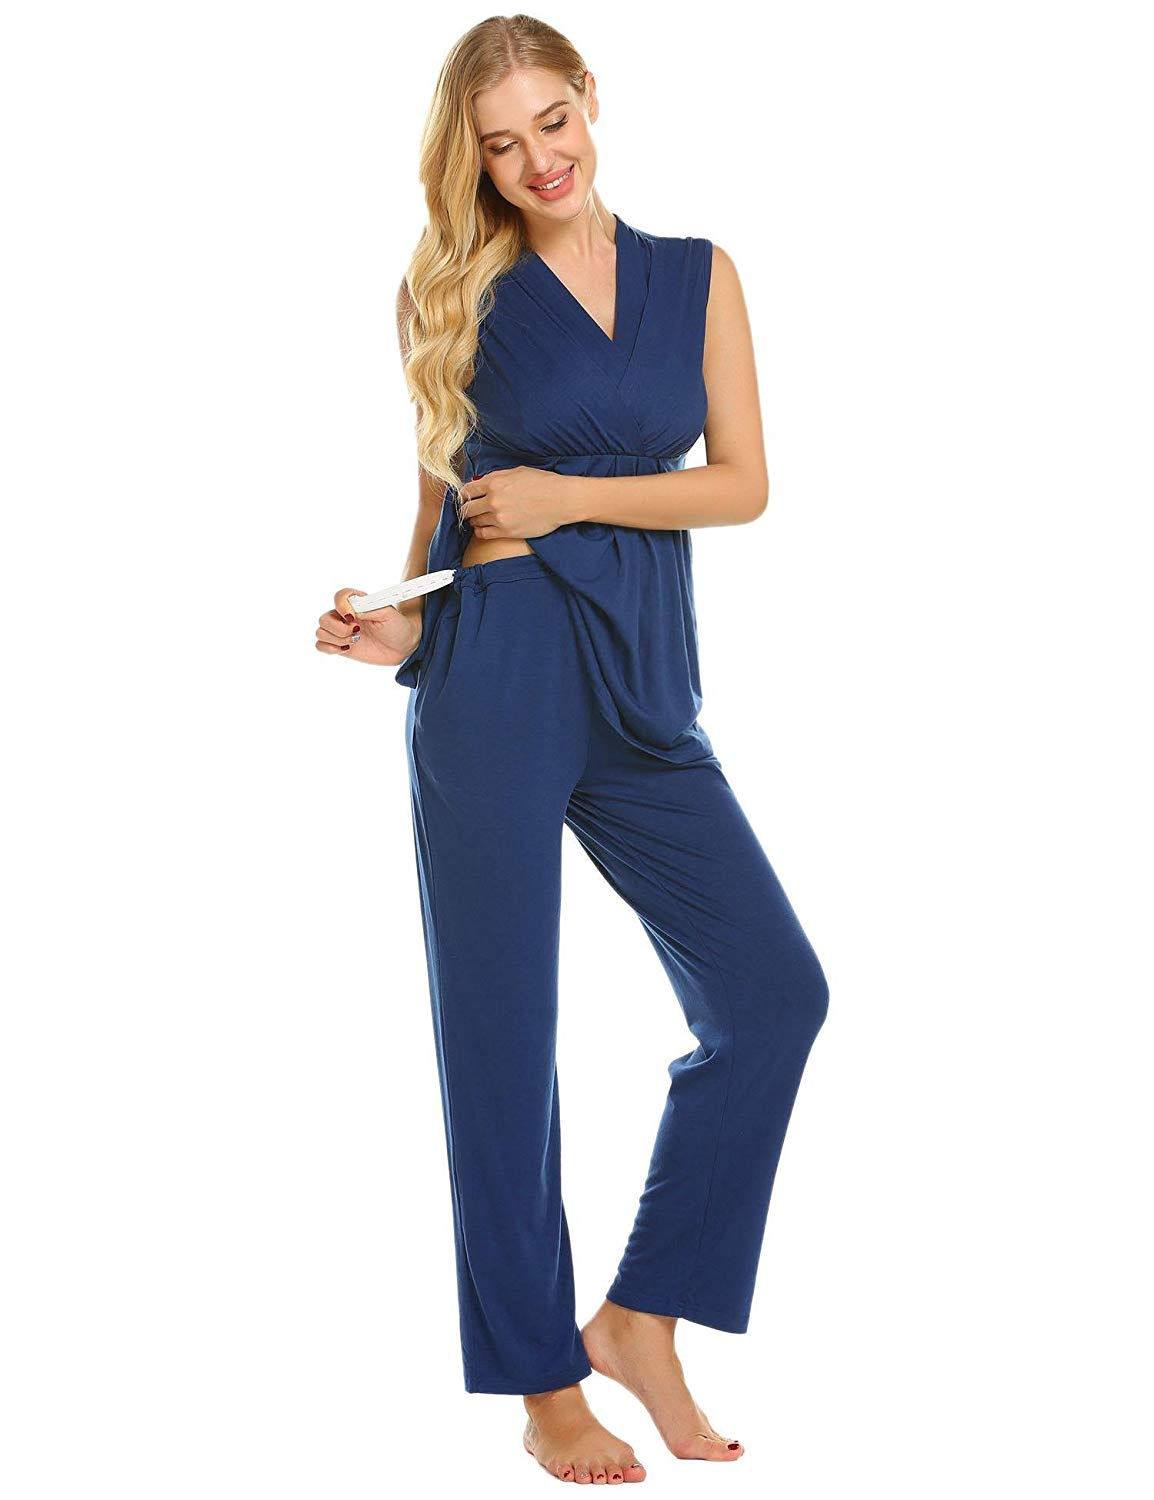 9c258307eaabf Get Quotations · Skylin Cotton Soft Maternity & Nursing Pajamas Sleepwear  Set Womens Breastfeeding Pjs Pregnancy Loungewear S-